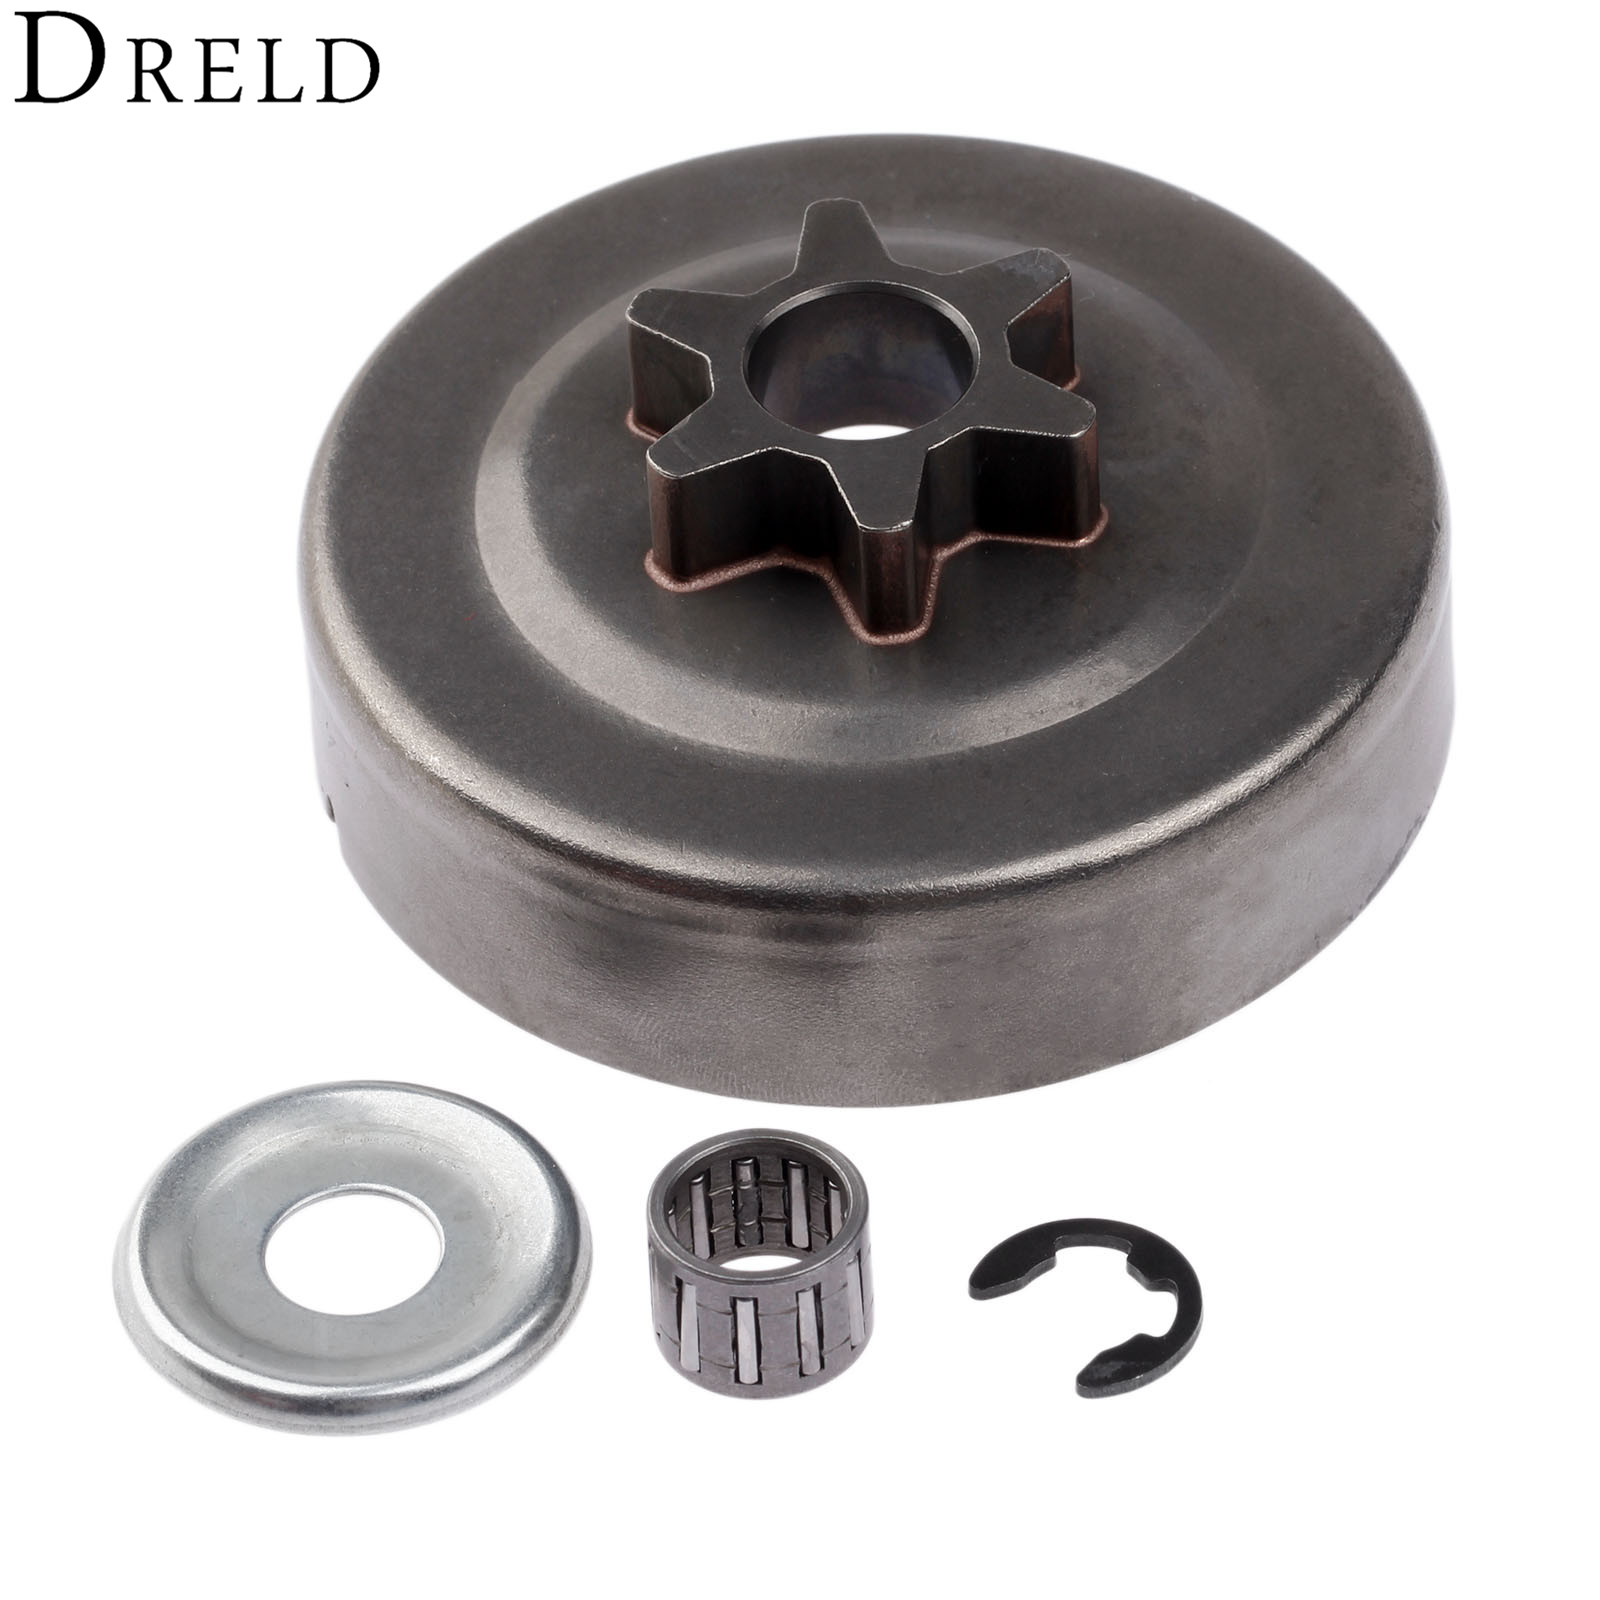 DRELD 3/8 6T Clutch Drum Sprocket Washer E-Clip Kit For STIHL Chainsaw 017 018 021 023 025 MS170 MS180 MS210 MS230 MS250 1123 5pcs chainsaw switch parts throttle trigger fit stihl 021 023 025 ms210 ms230 ms250 replaces 1128 182 1005